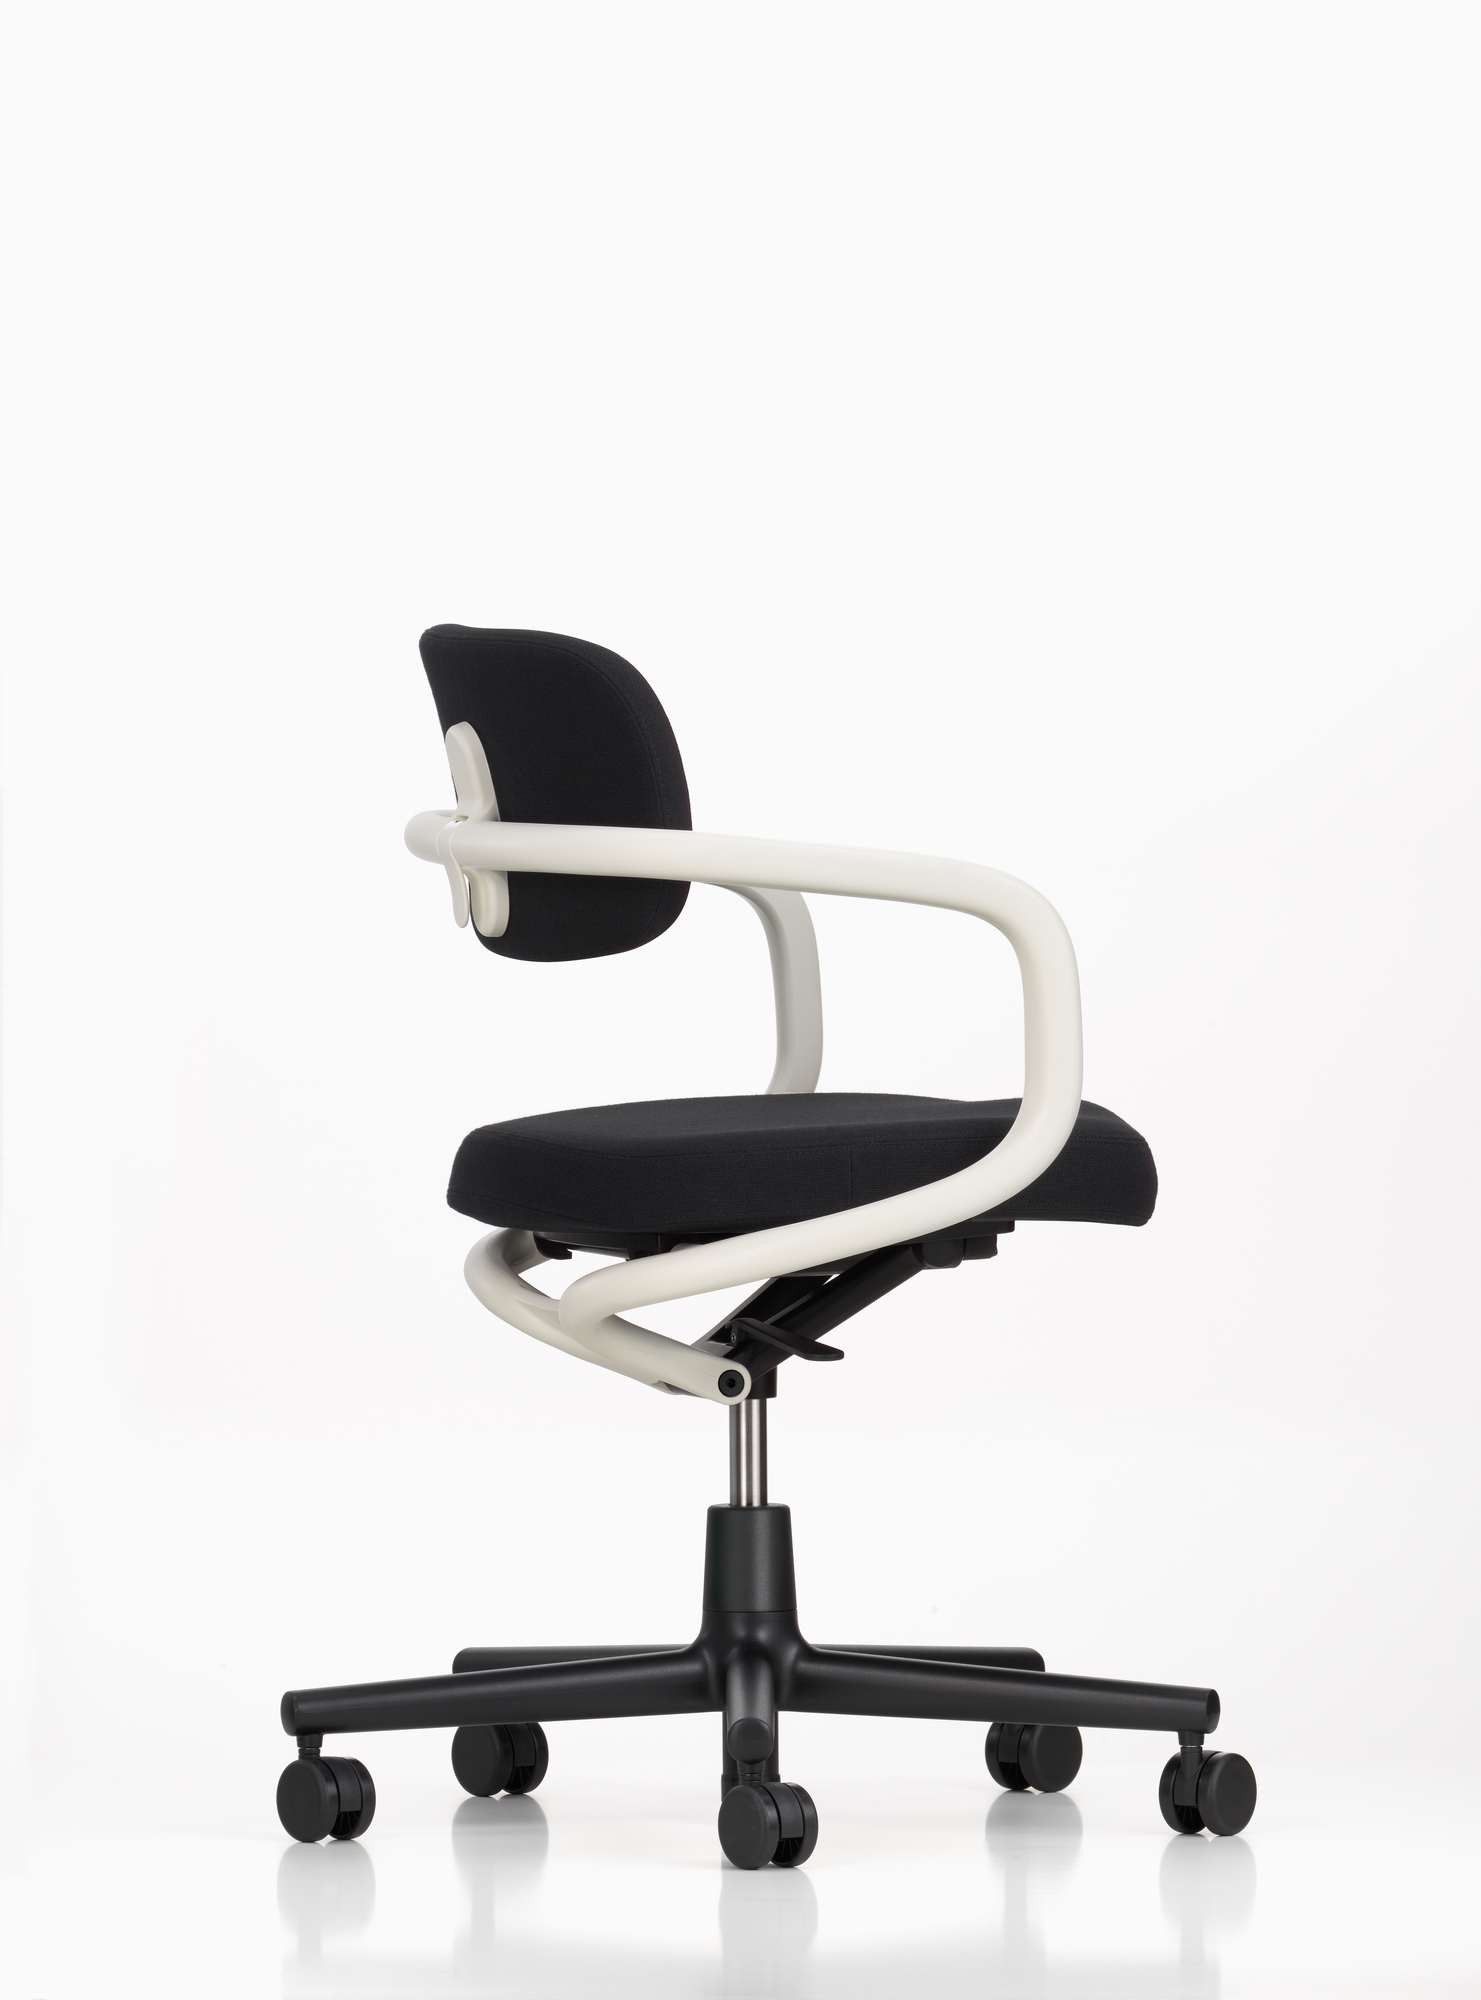 vitra office chair price french country dining chairs allstar designed by konstantin grcic for 653 00 best guarantee free shipping in many countries 28 days right of return